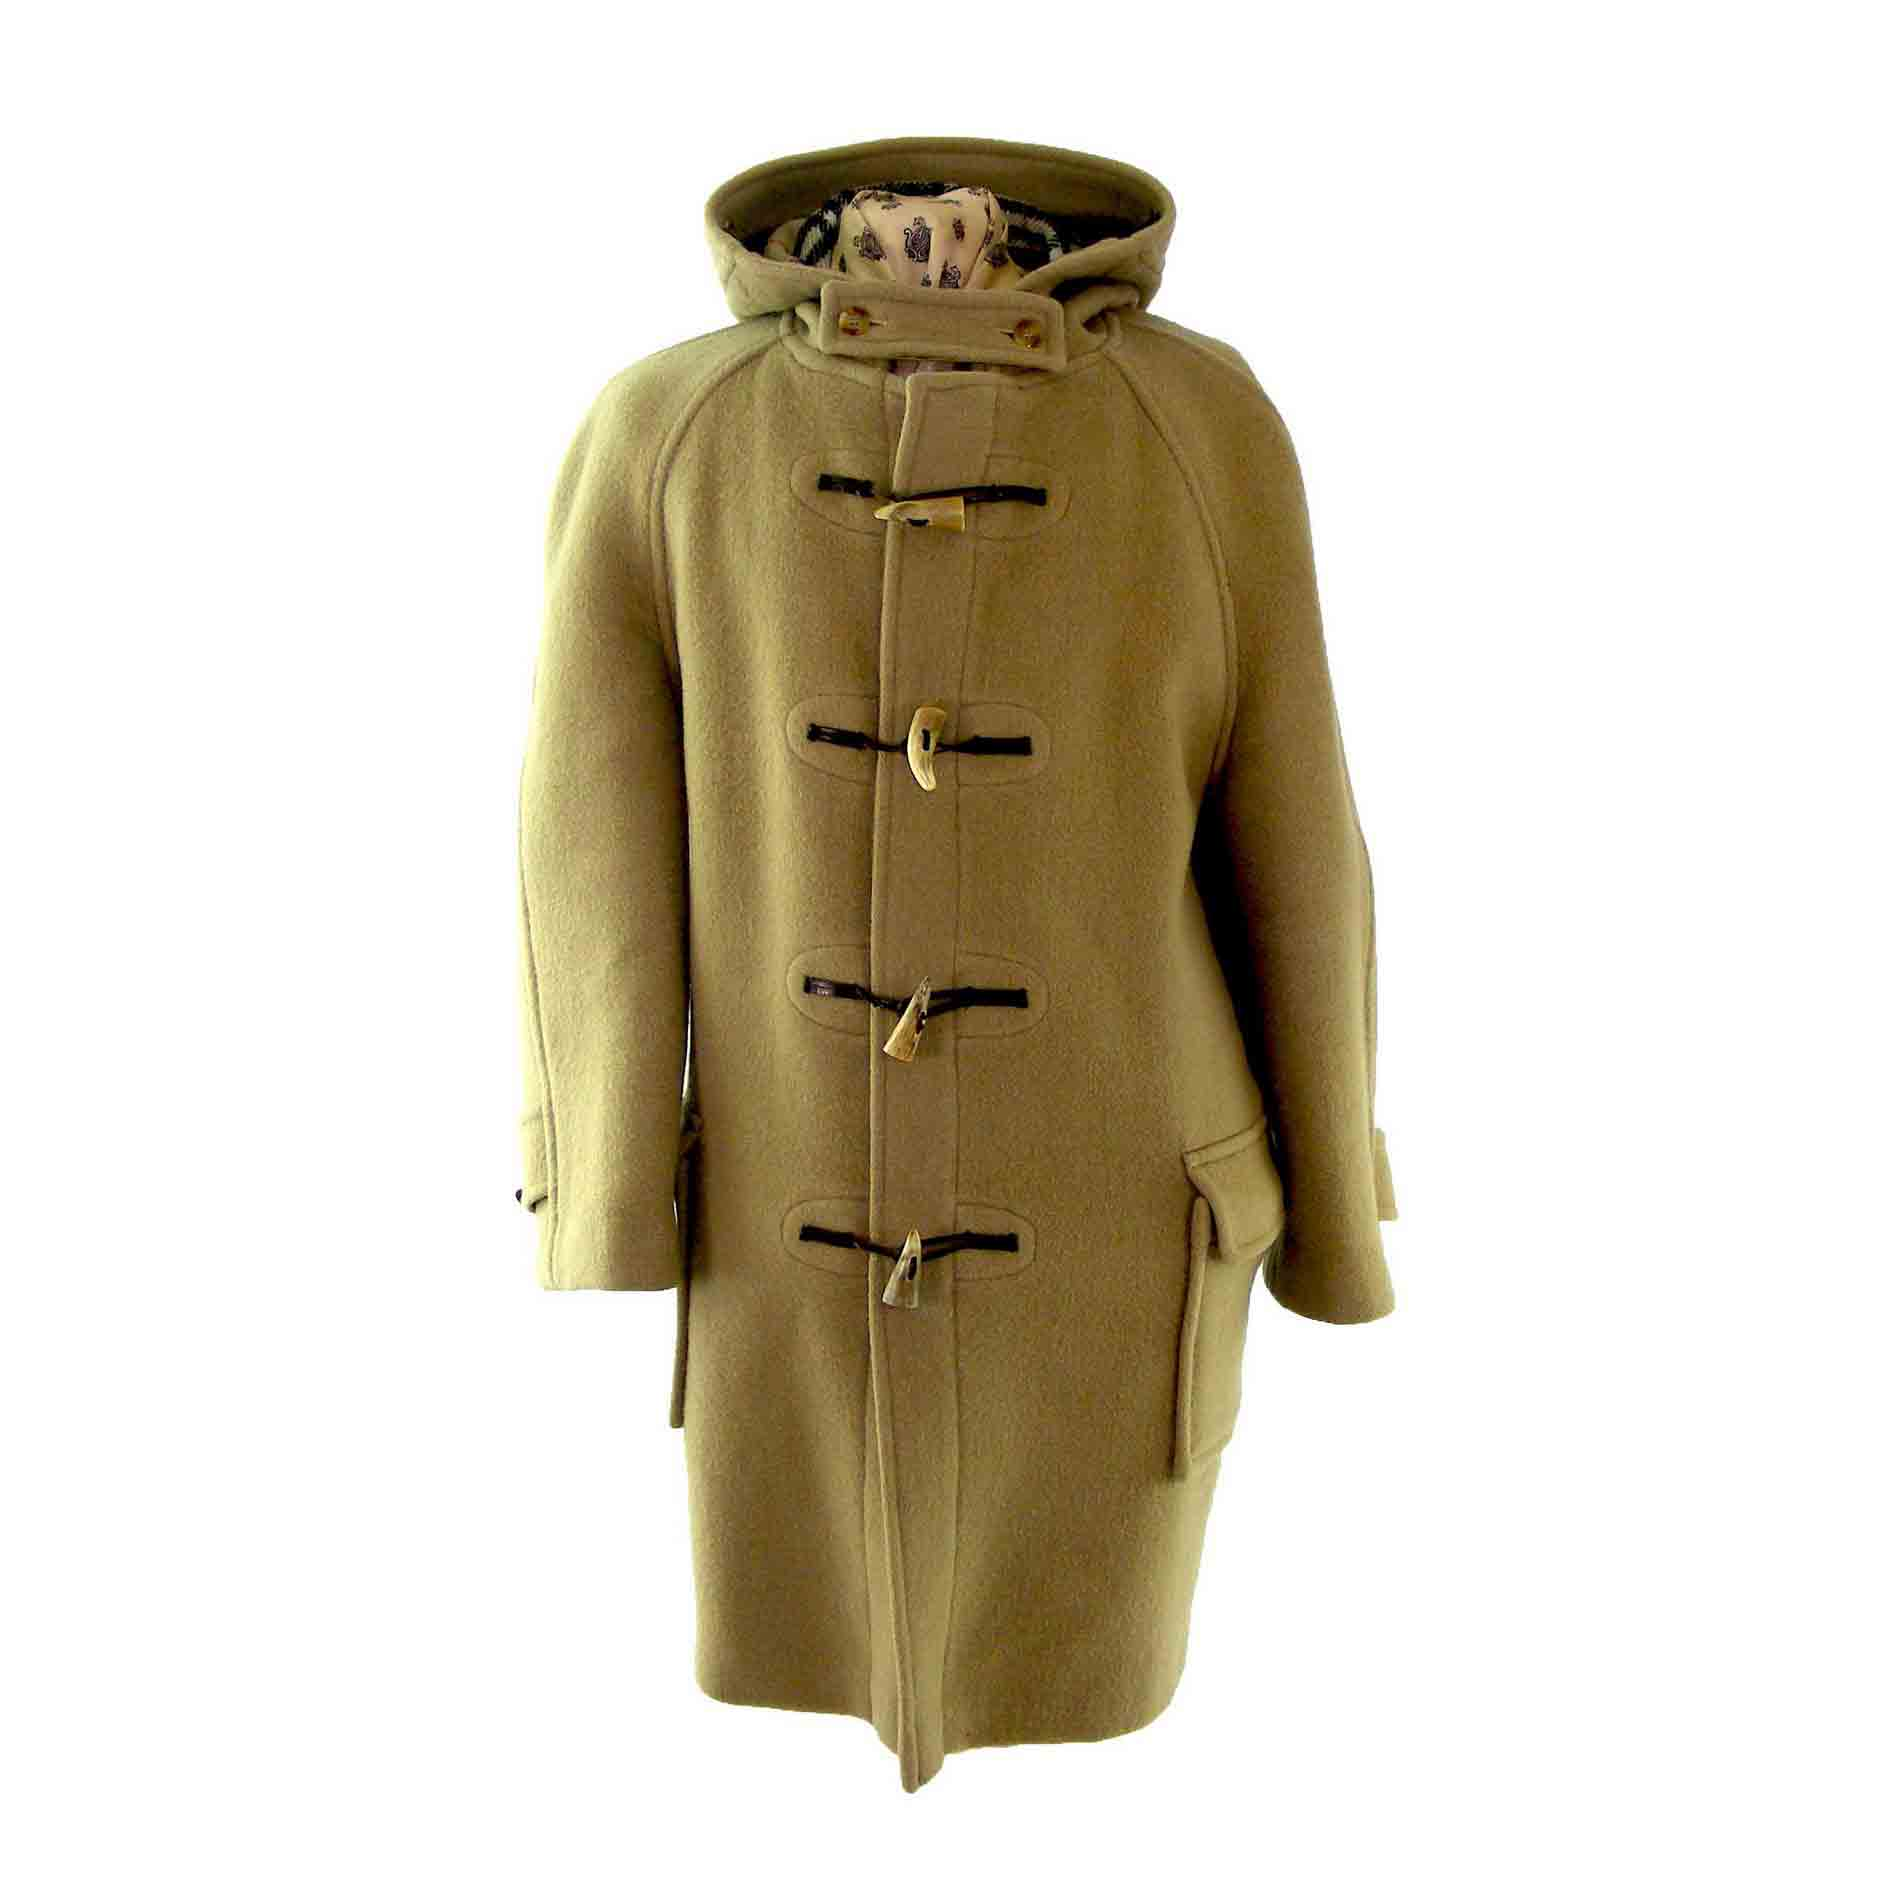 burberry coat sale outlet vosf  burberry coat sale outlet